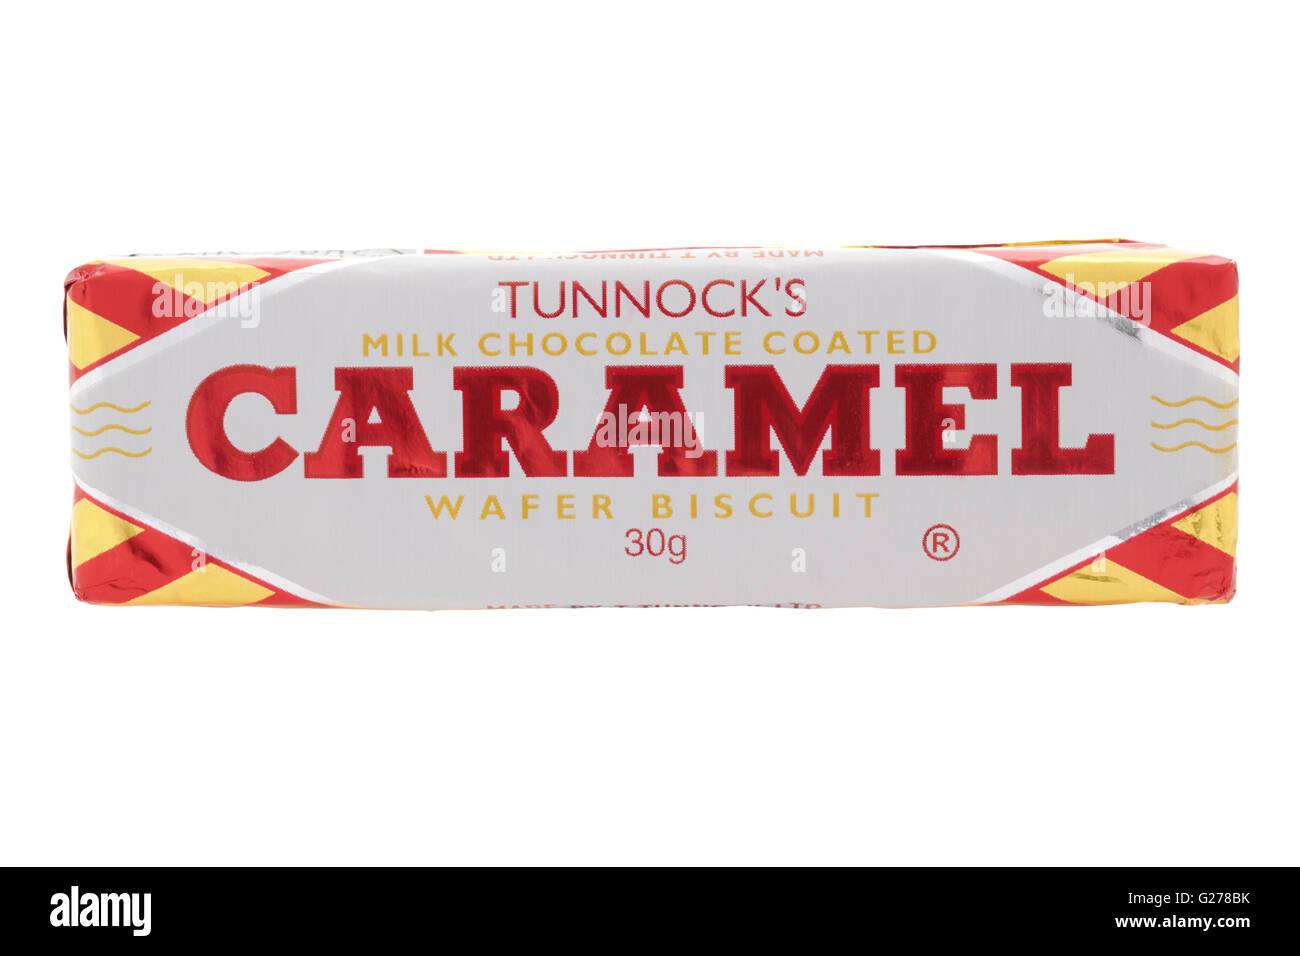 Tunnock's milk chocolate coated caramel wafer biscuit on white background - Stock Image